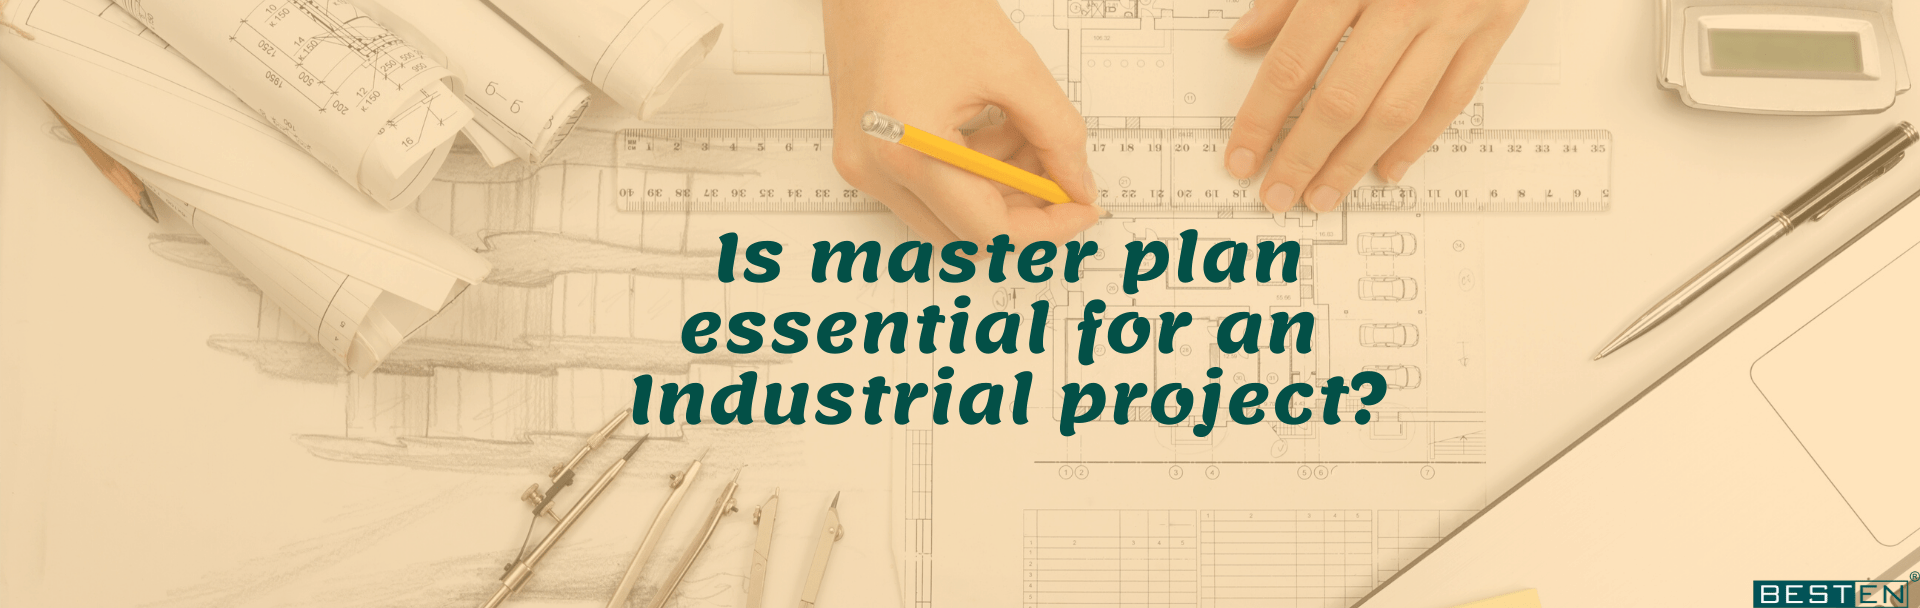 Industrial architect consultancy